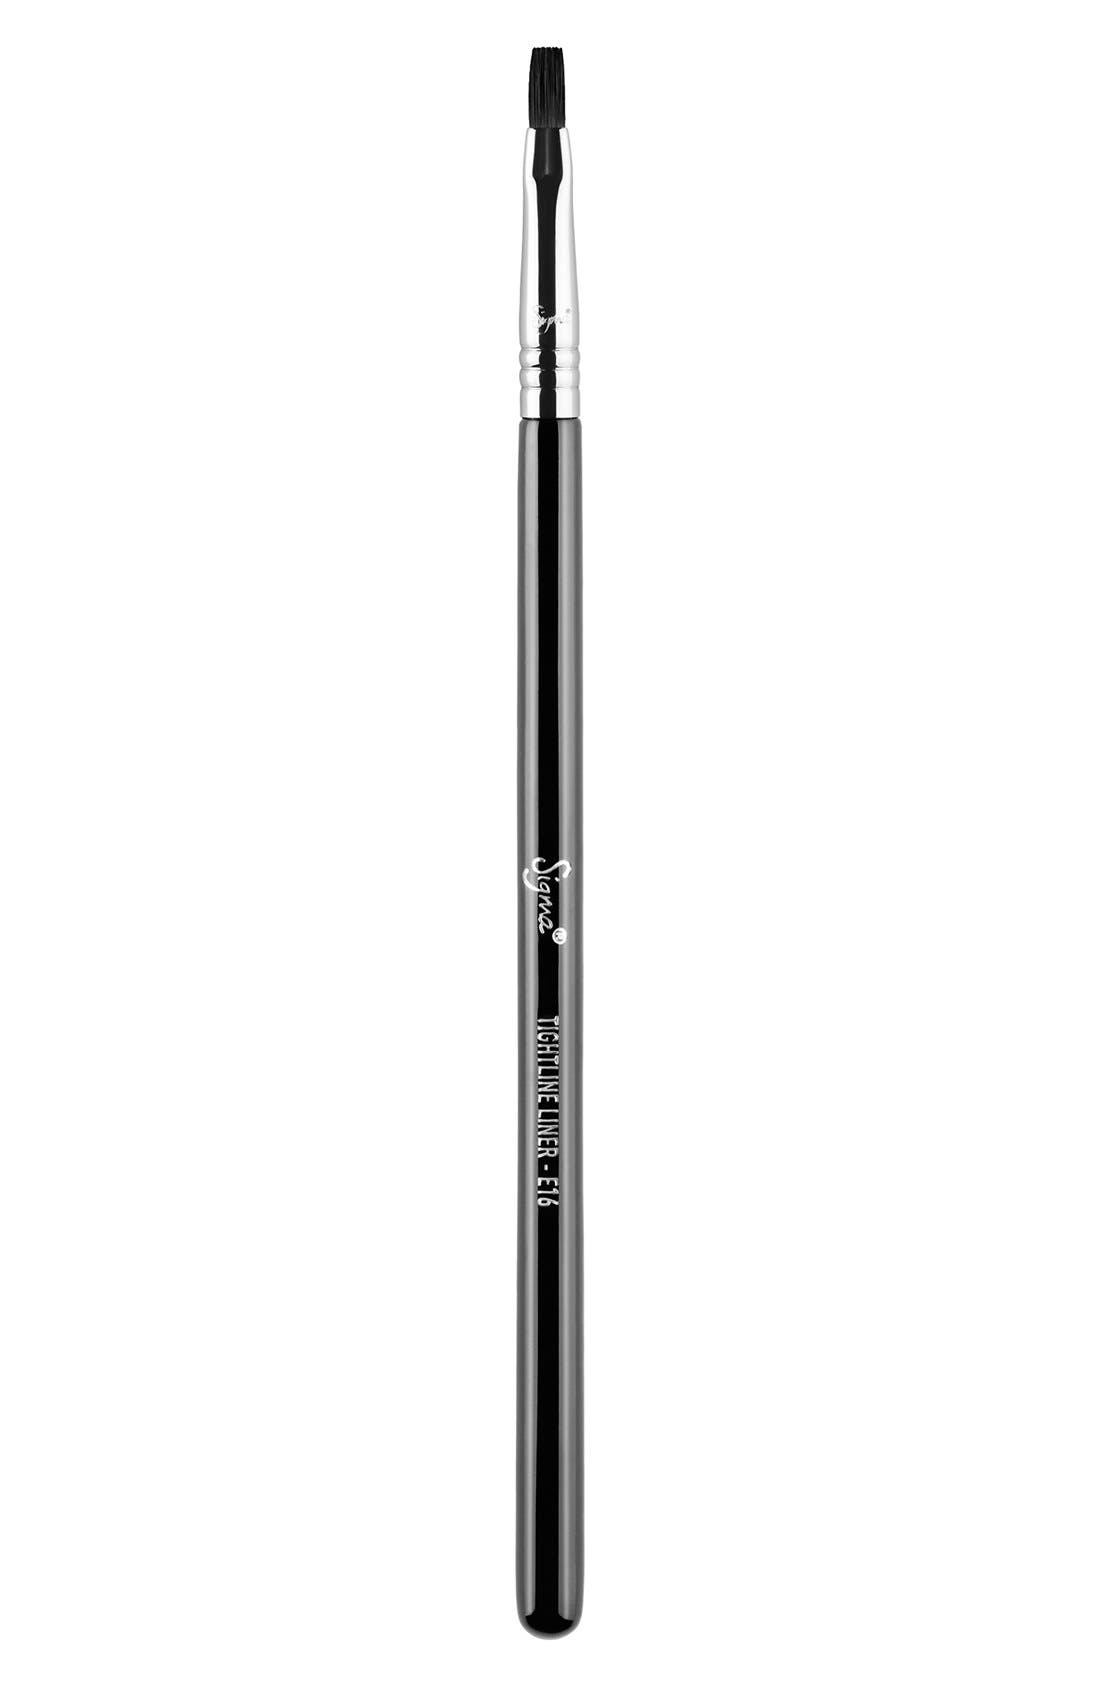 E16 Tightline Liner Brush,                             Main thumbnail 1, color,                             NO COLOR